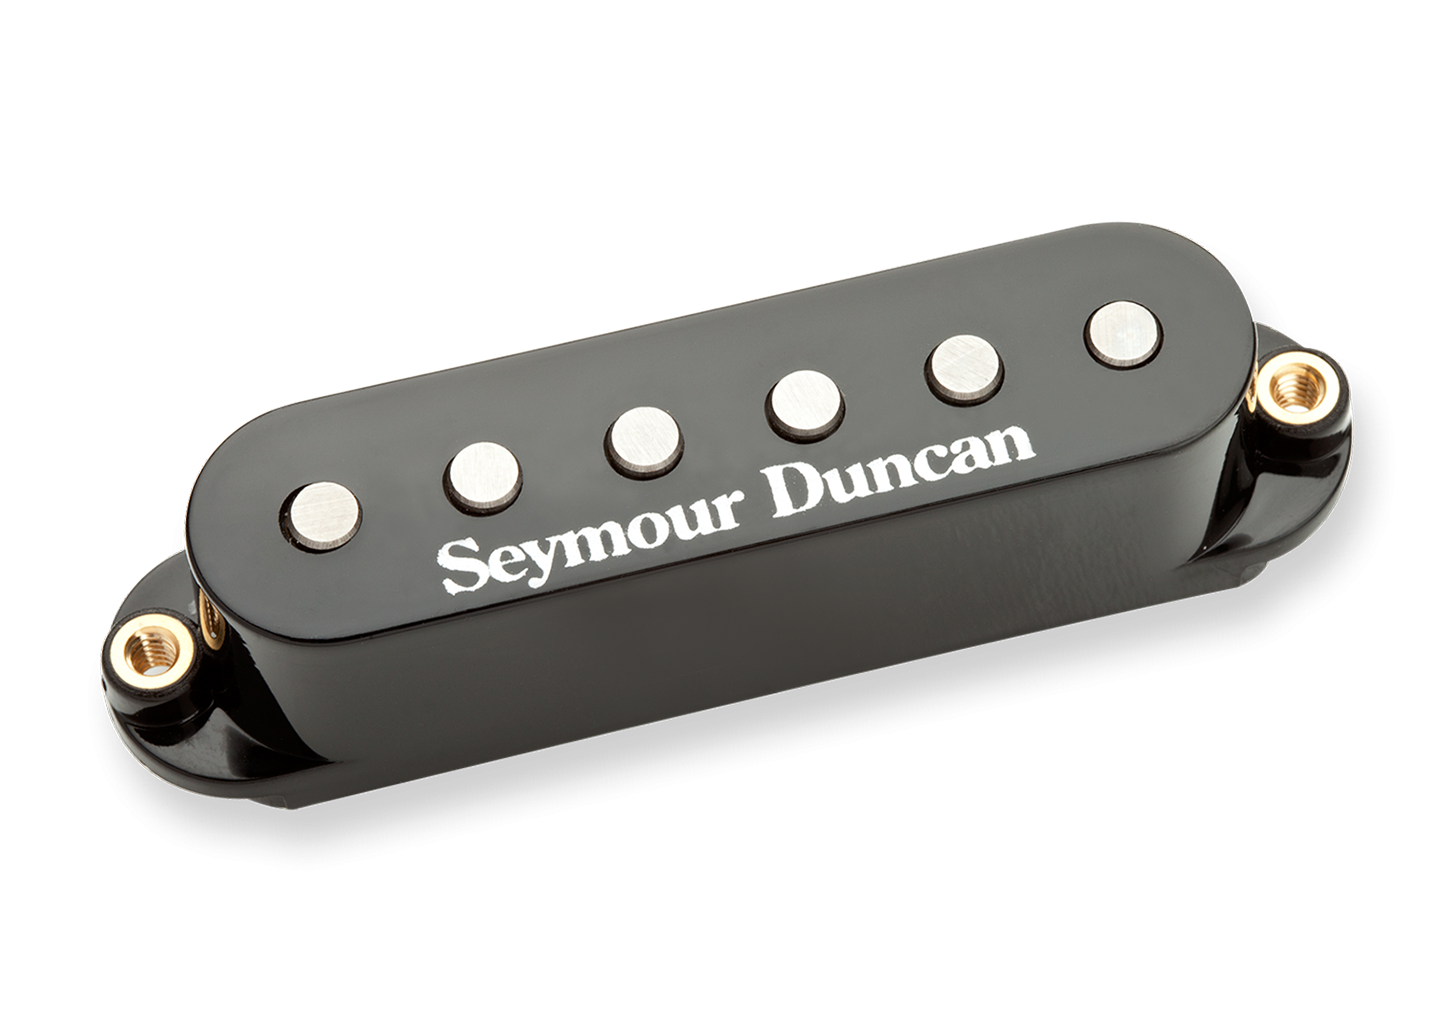 Seymour Duncan Hot Stack Plus Strat STK-S9B Bridge - Black